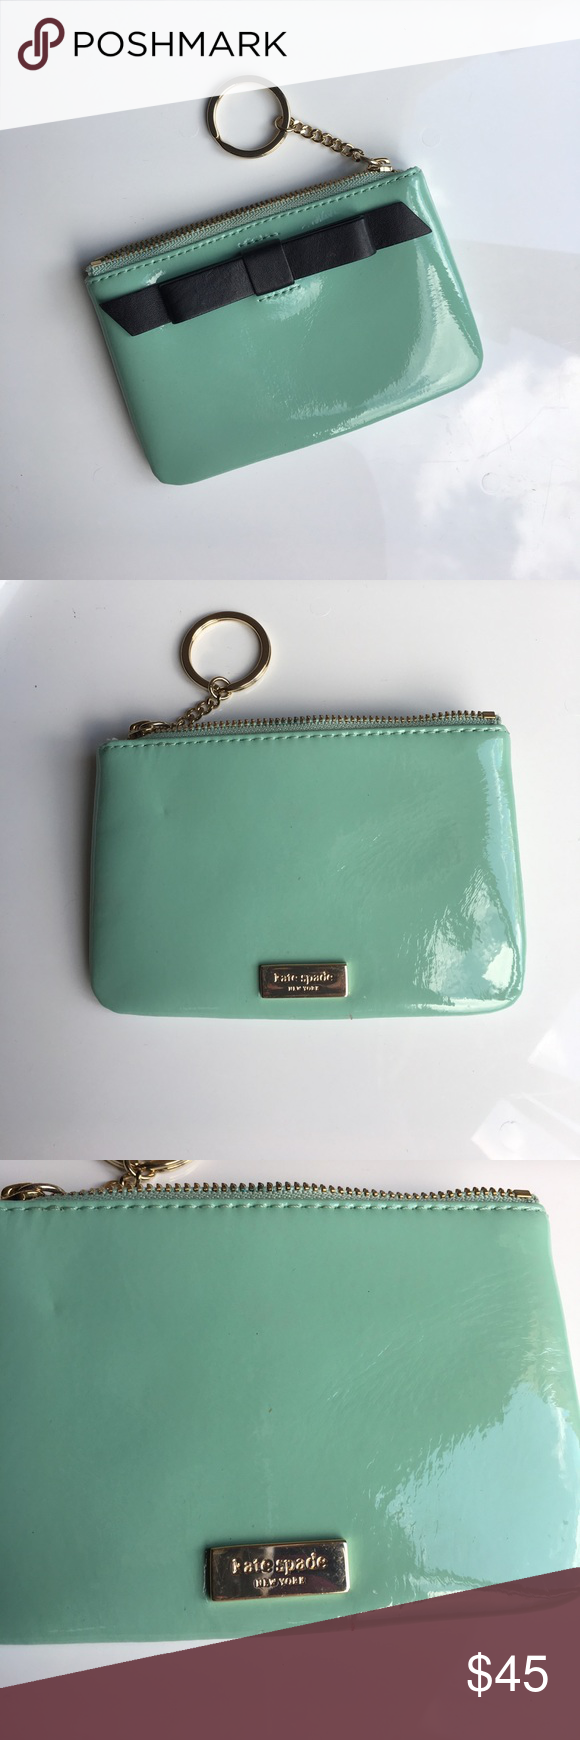 Kate spade mint green bow coin purse Super adorable mint green patent leather coin pouch kate spade Bags Clutches & Wristlets